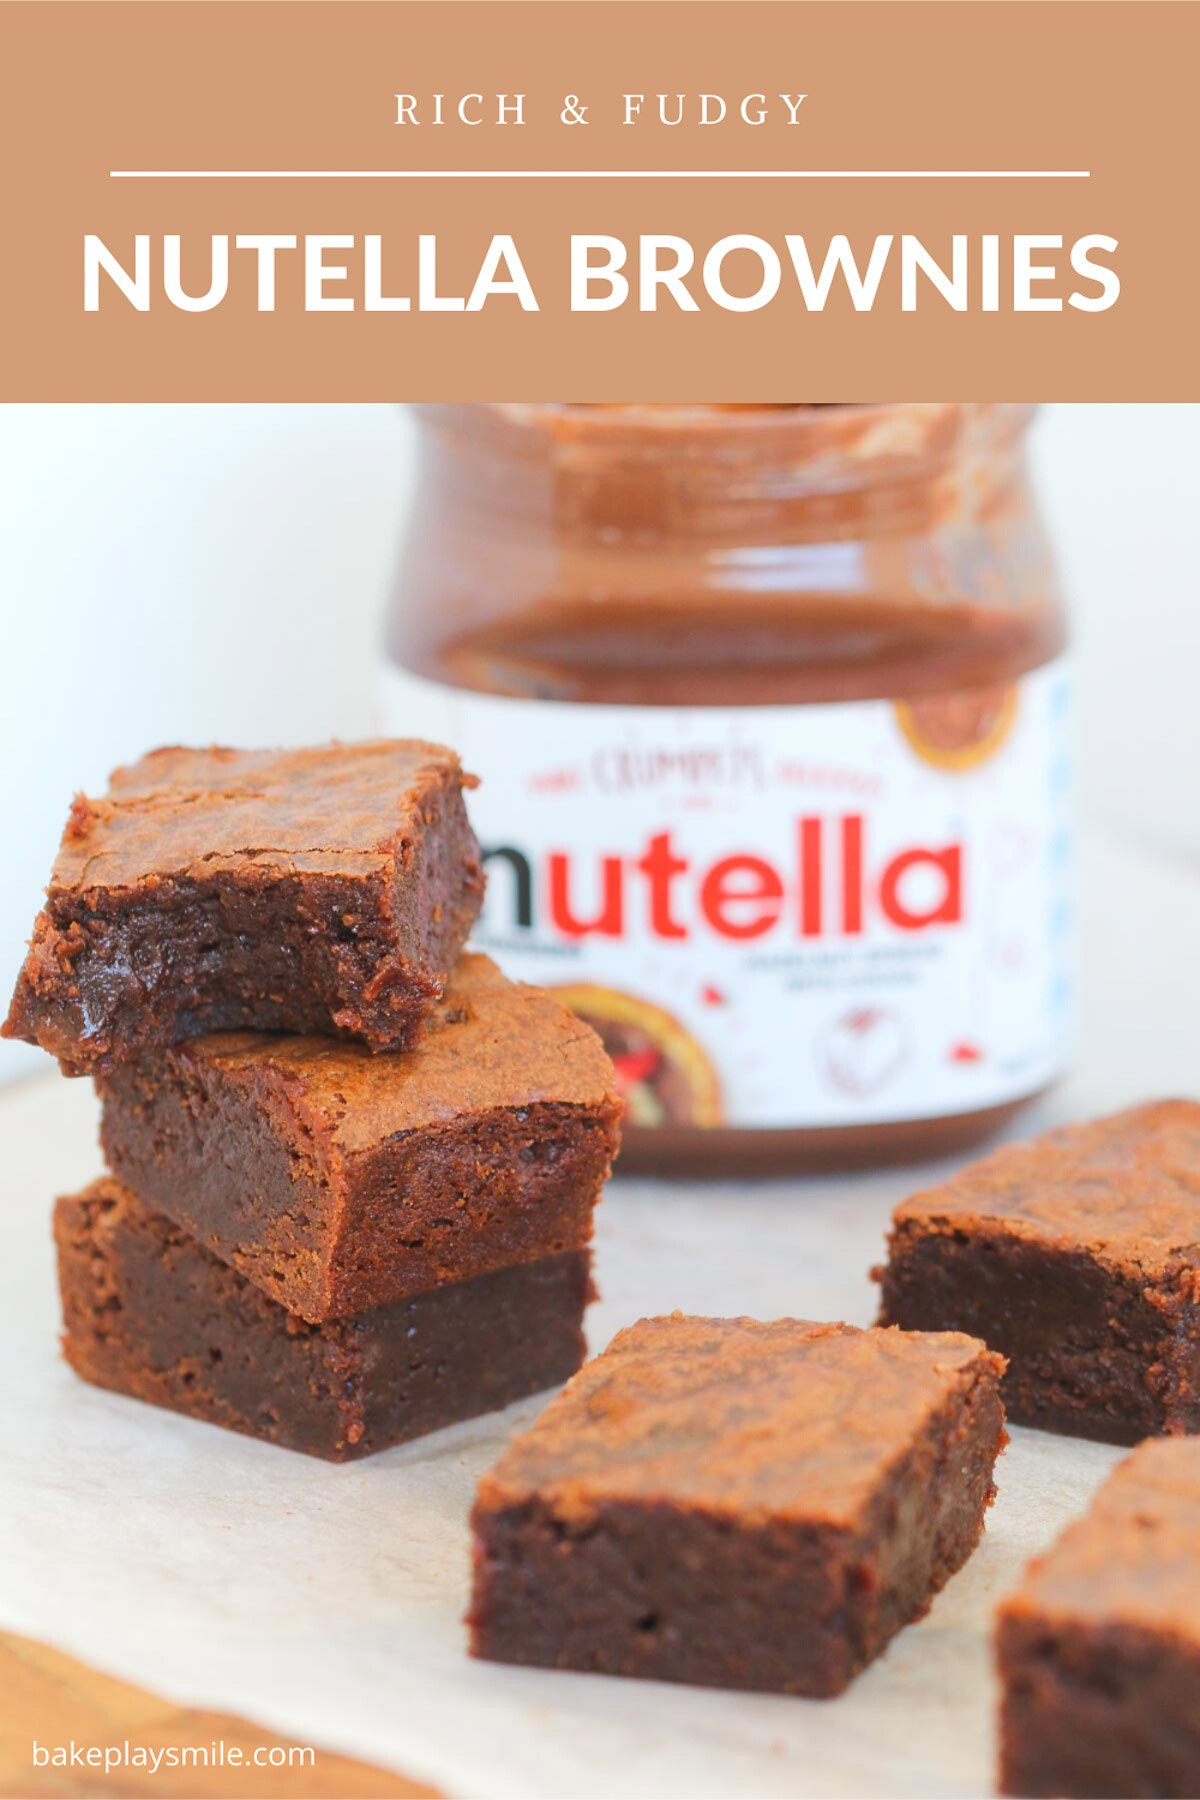 A stack of three chocolate brownies in front of a jar of Nutella chocolate hazelnut spread.